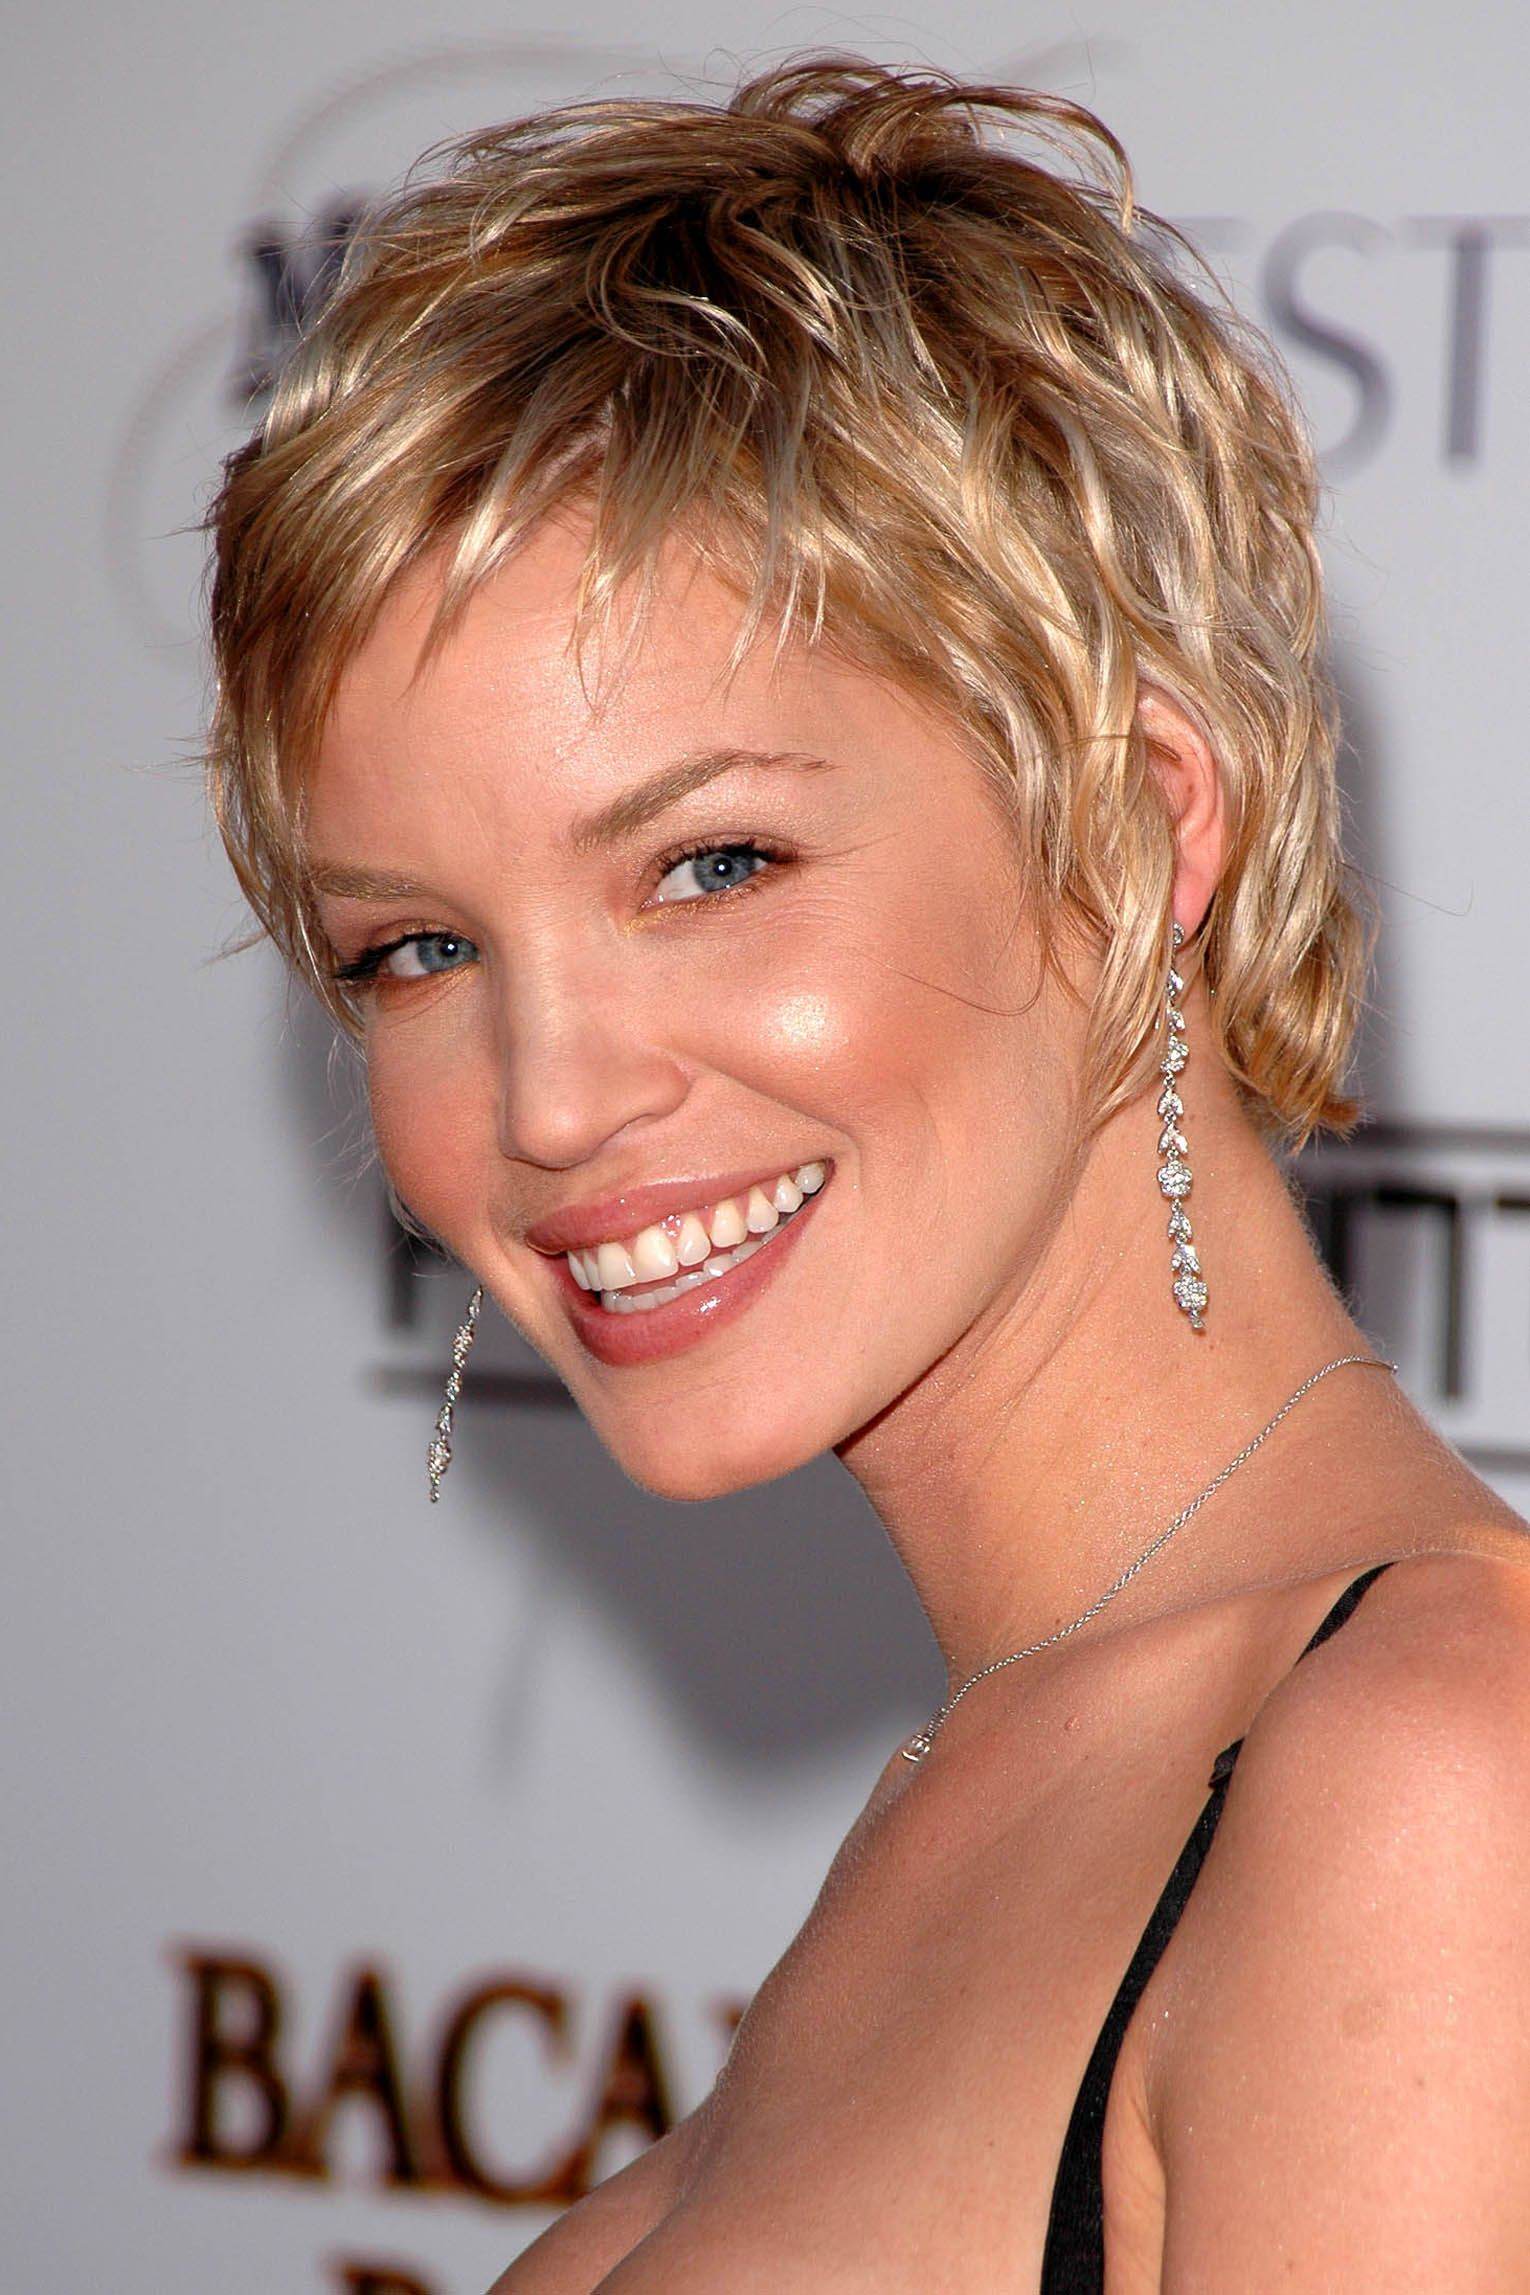 ashley scott filmashley scott underwater, ashley scott supernatural, ashley scott imdb, ashley scott instagram, ashley scott film, ashley scott, ashley scott facebook, ashley scott fitness, ashley scott actress, ashley scott meyers, ashley scott model